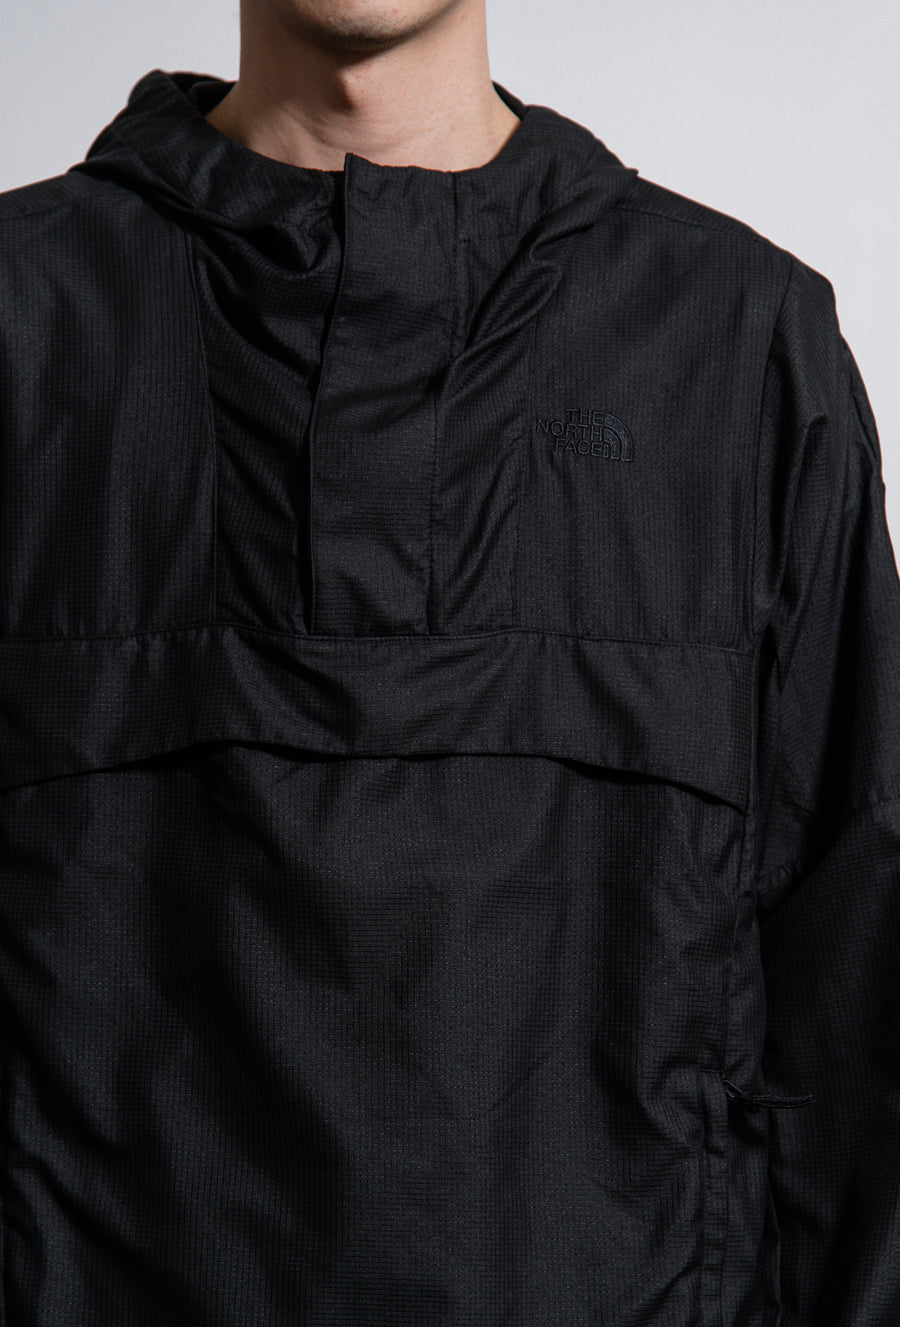 Wind Jammer Dot Air Pullover Jacket Black